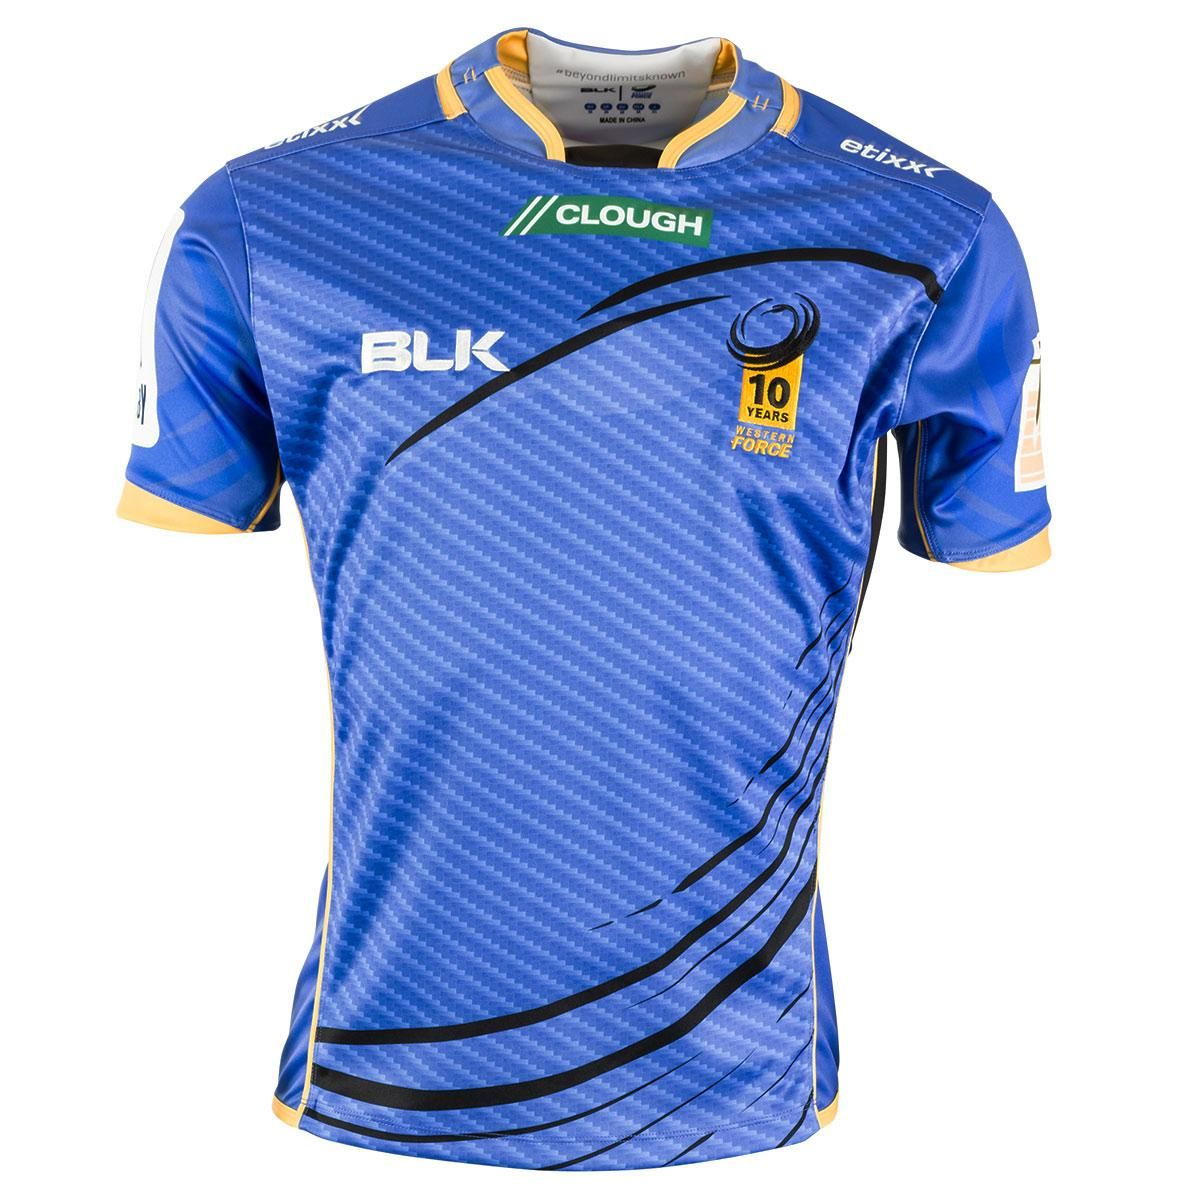 Force15front Jpg 1200 1200 Sport Shirt Design Sports Shirts Rugby Jersey